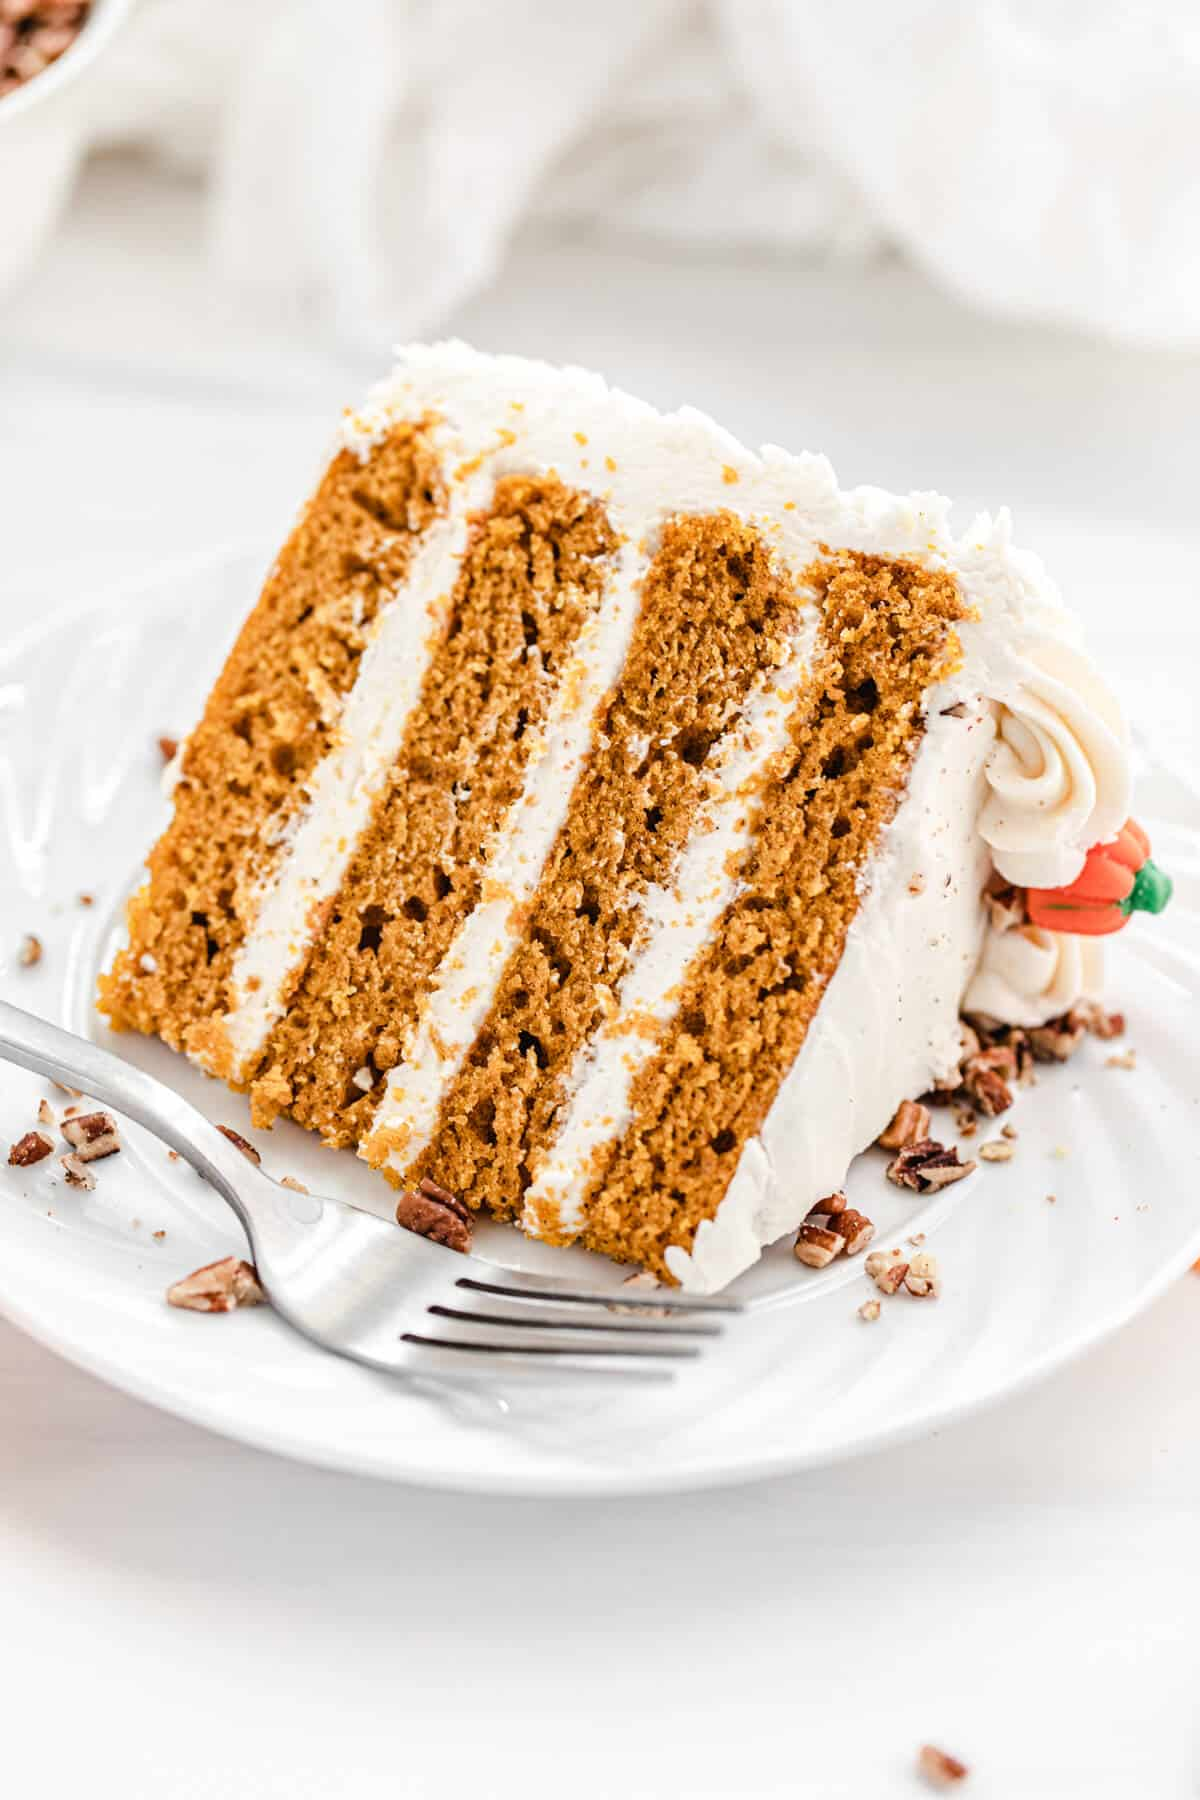 slice of pumpkin cake on a white plate